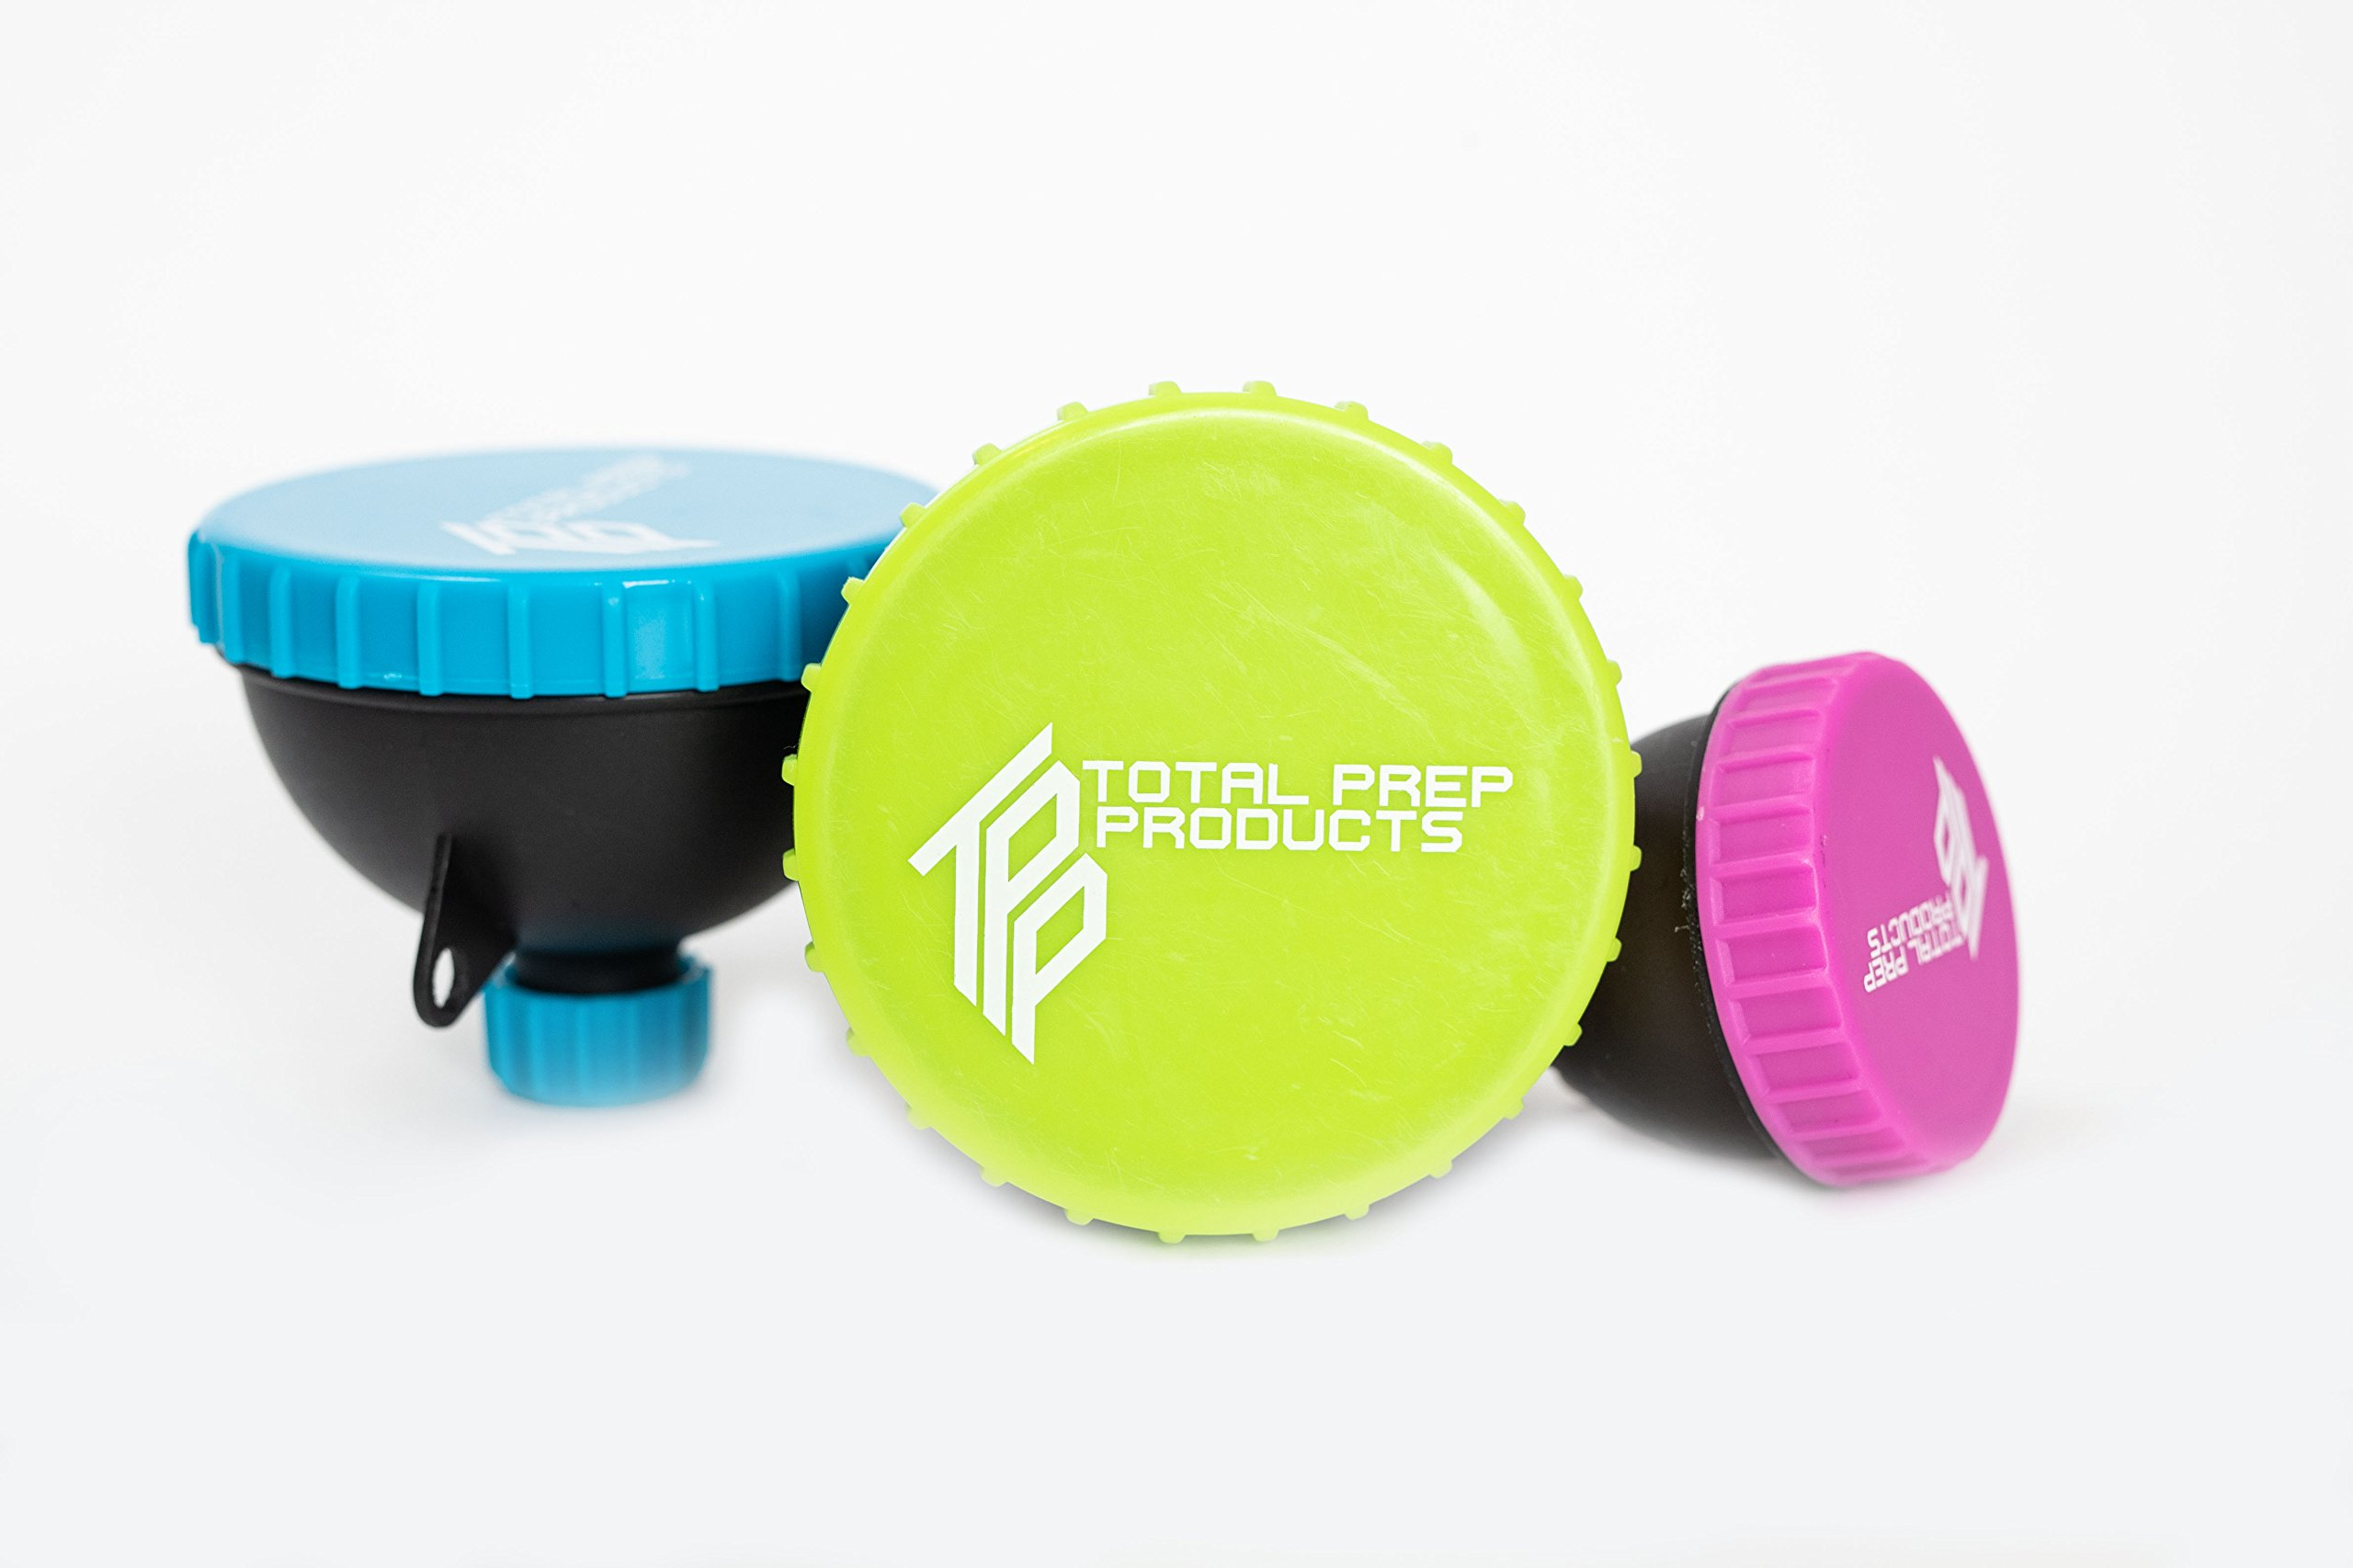 Total Prep Products Portable Protein Funnel BPA Free Non Toxic 3 Pack Multiple Colors by Total Prep Products (Image #1)